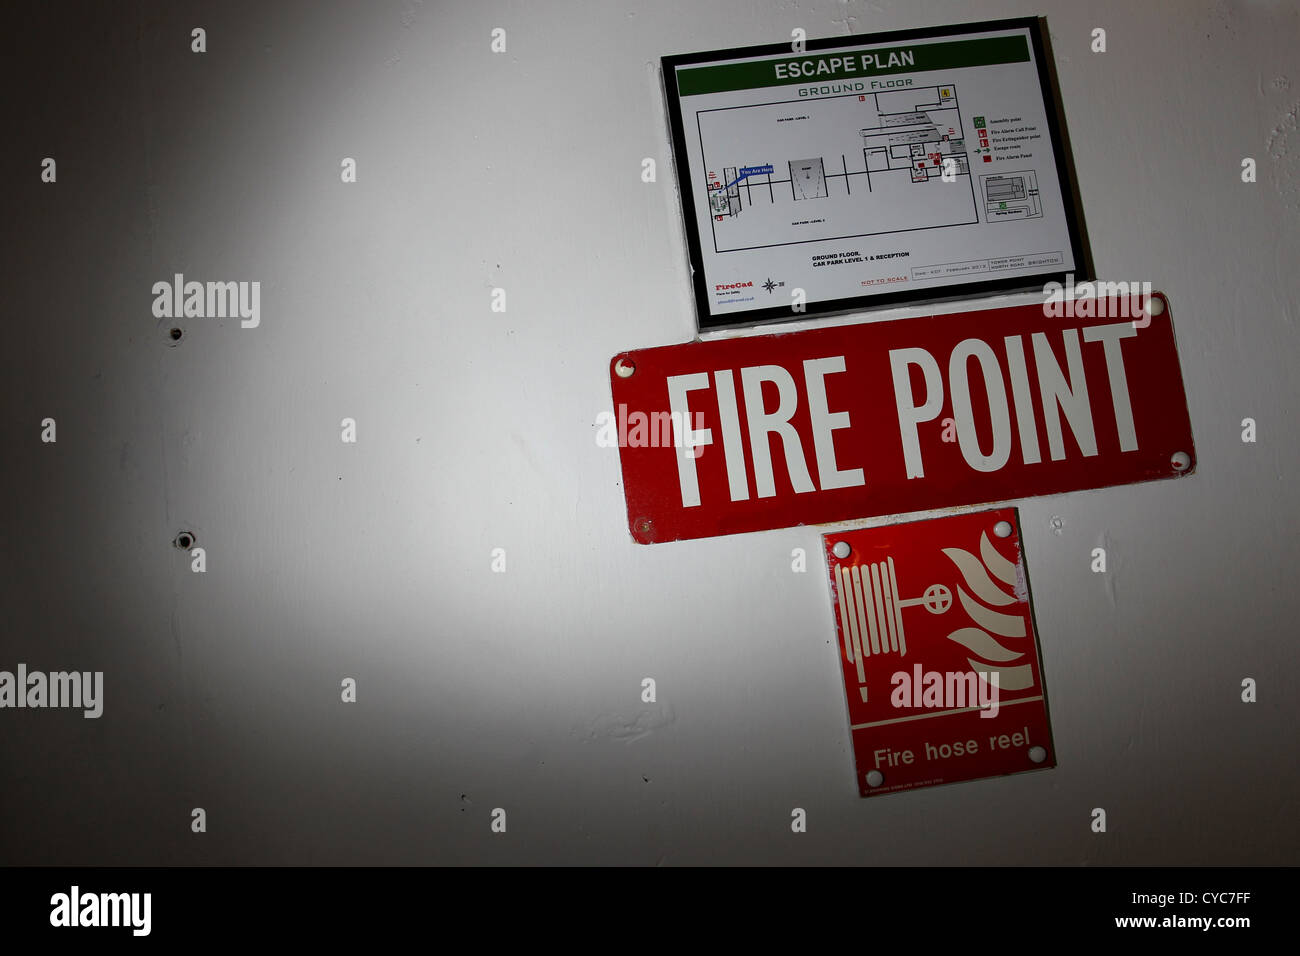 Fire Point sign on the wall of a building in Brighton, East Sussex, UK. - Stock Image